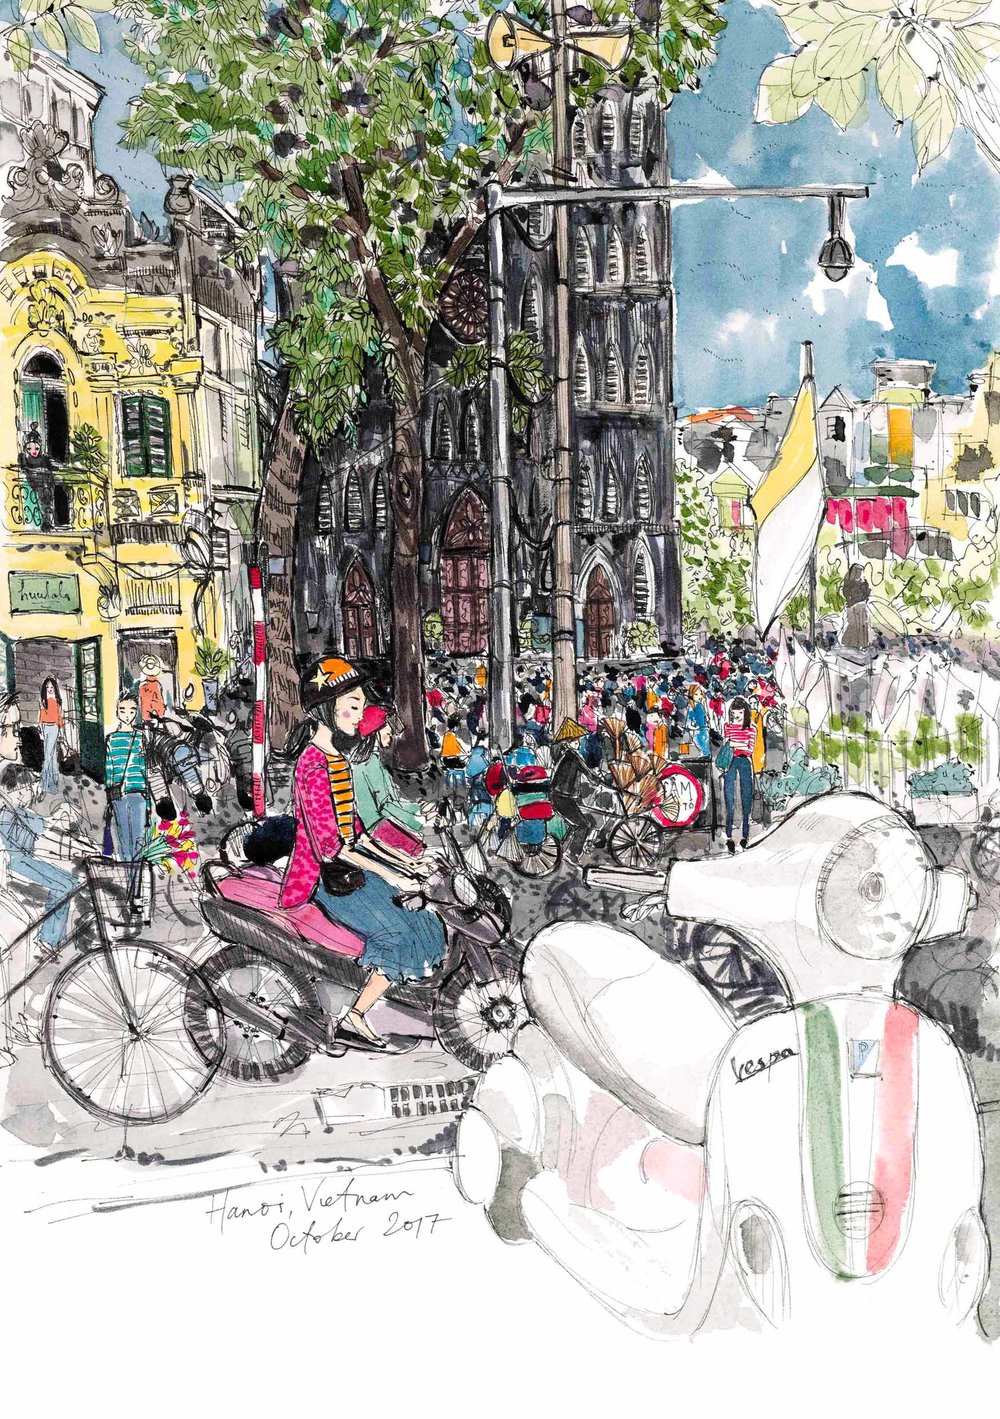 This illustration is available to buy  here . I created it over a period of 3 days from the tiniest seat you have ever seen, at Cong Caphe near St Joseph's Cathedral in central Hanoi.